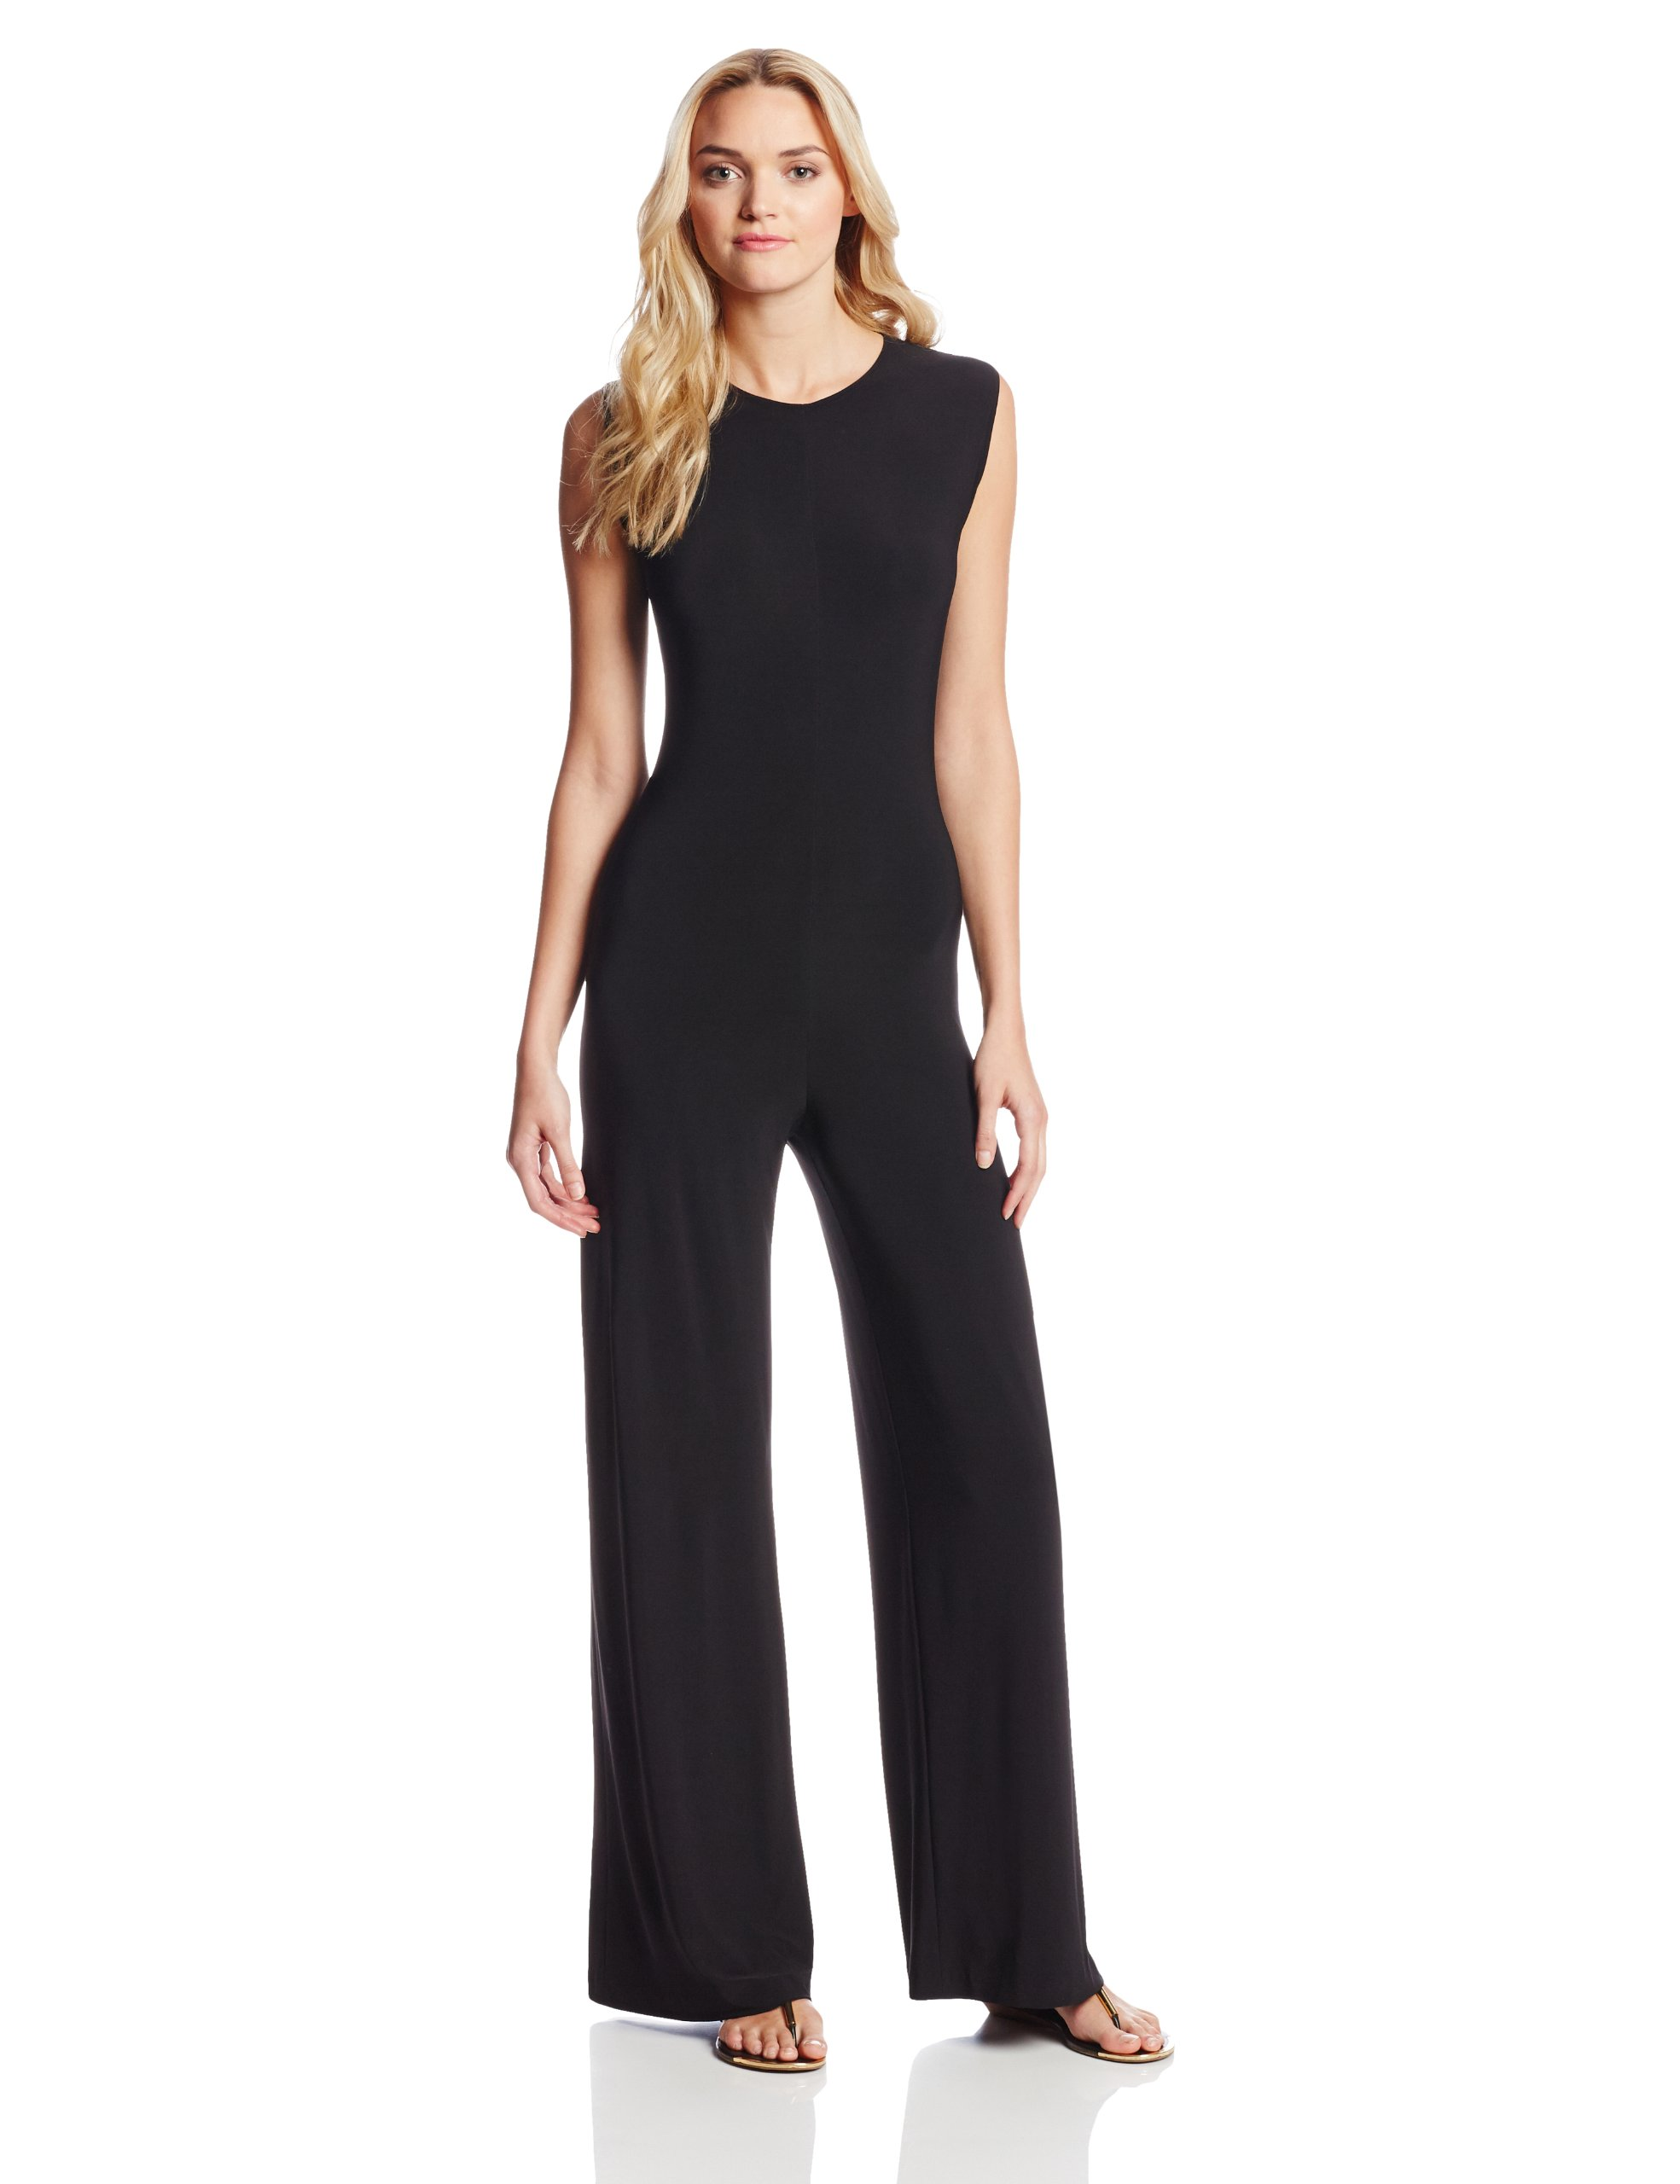 KAMALIKULTURE Norma Kamali Women's Sleeveless Jumpsuit, Black, Medium